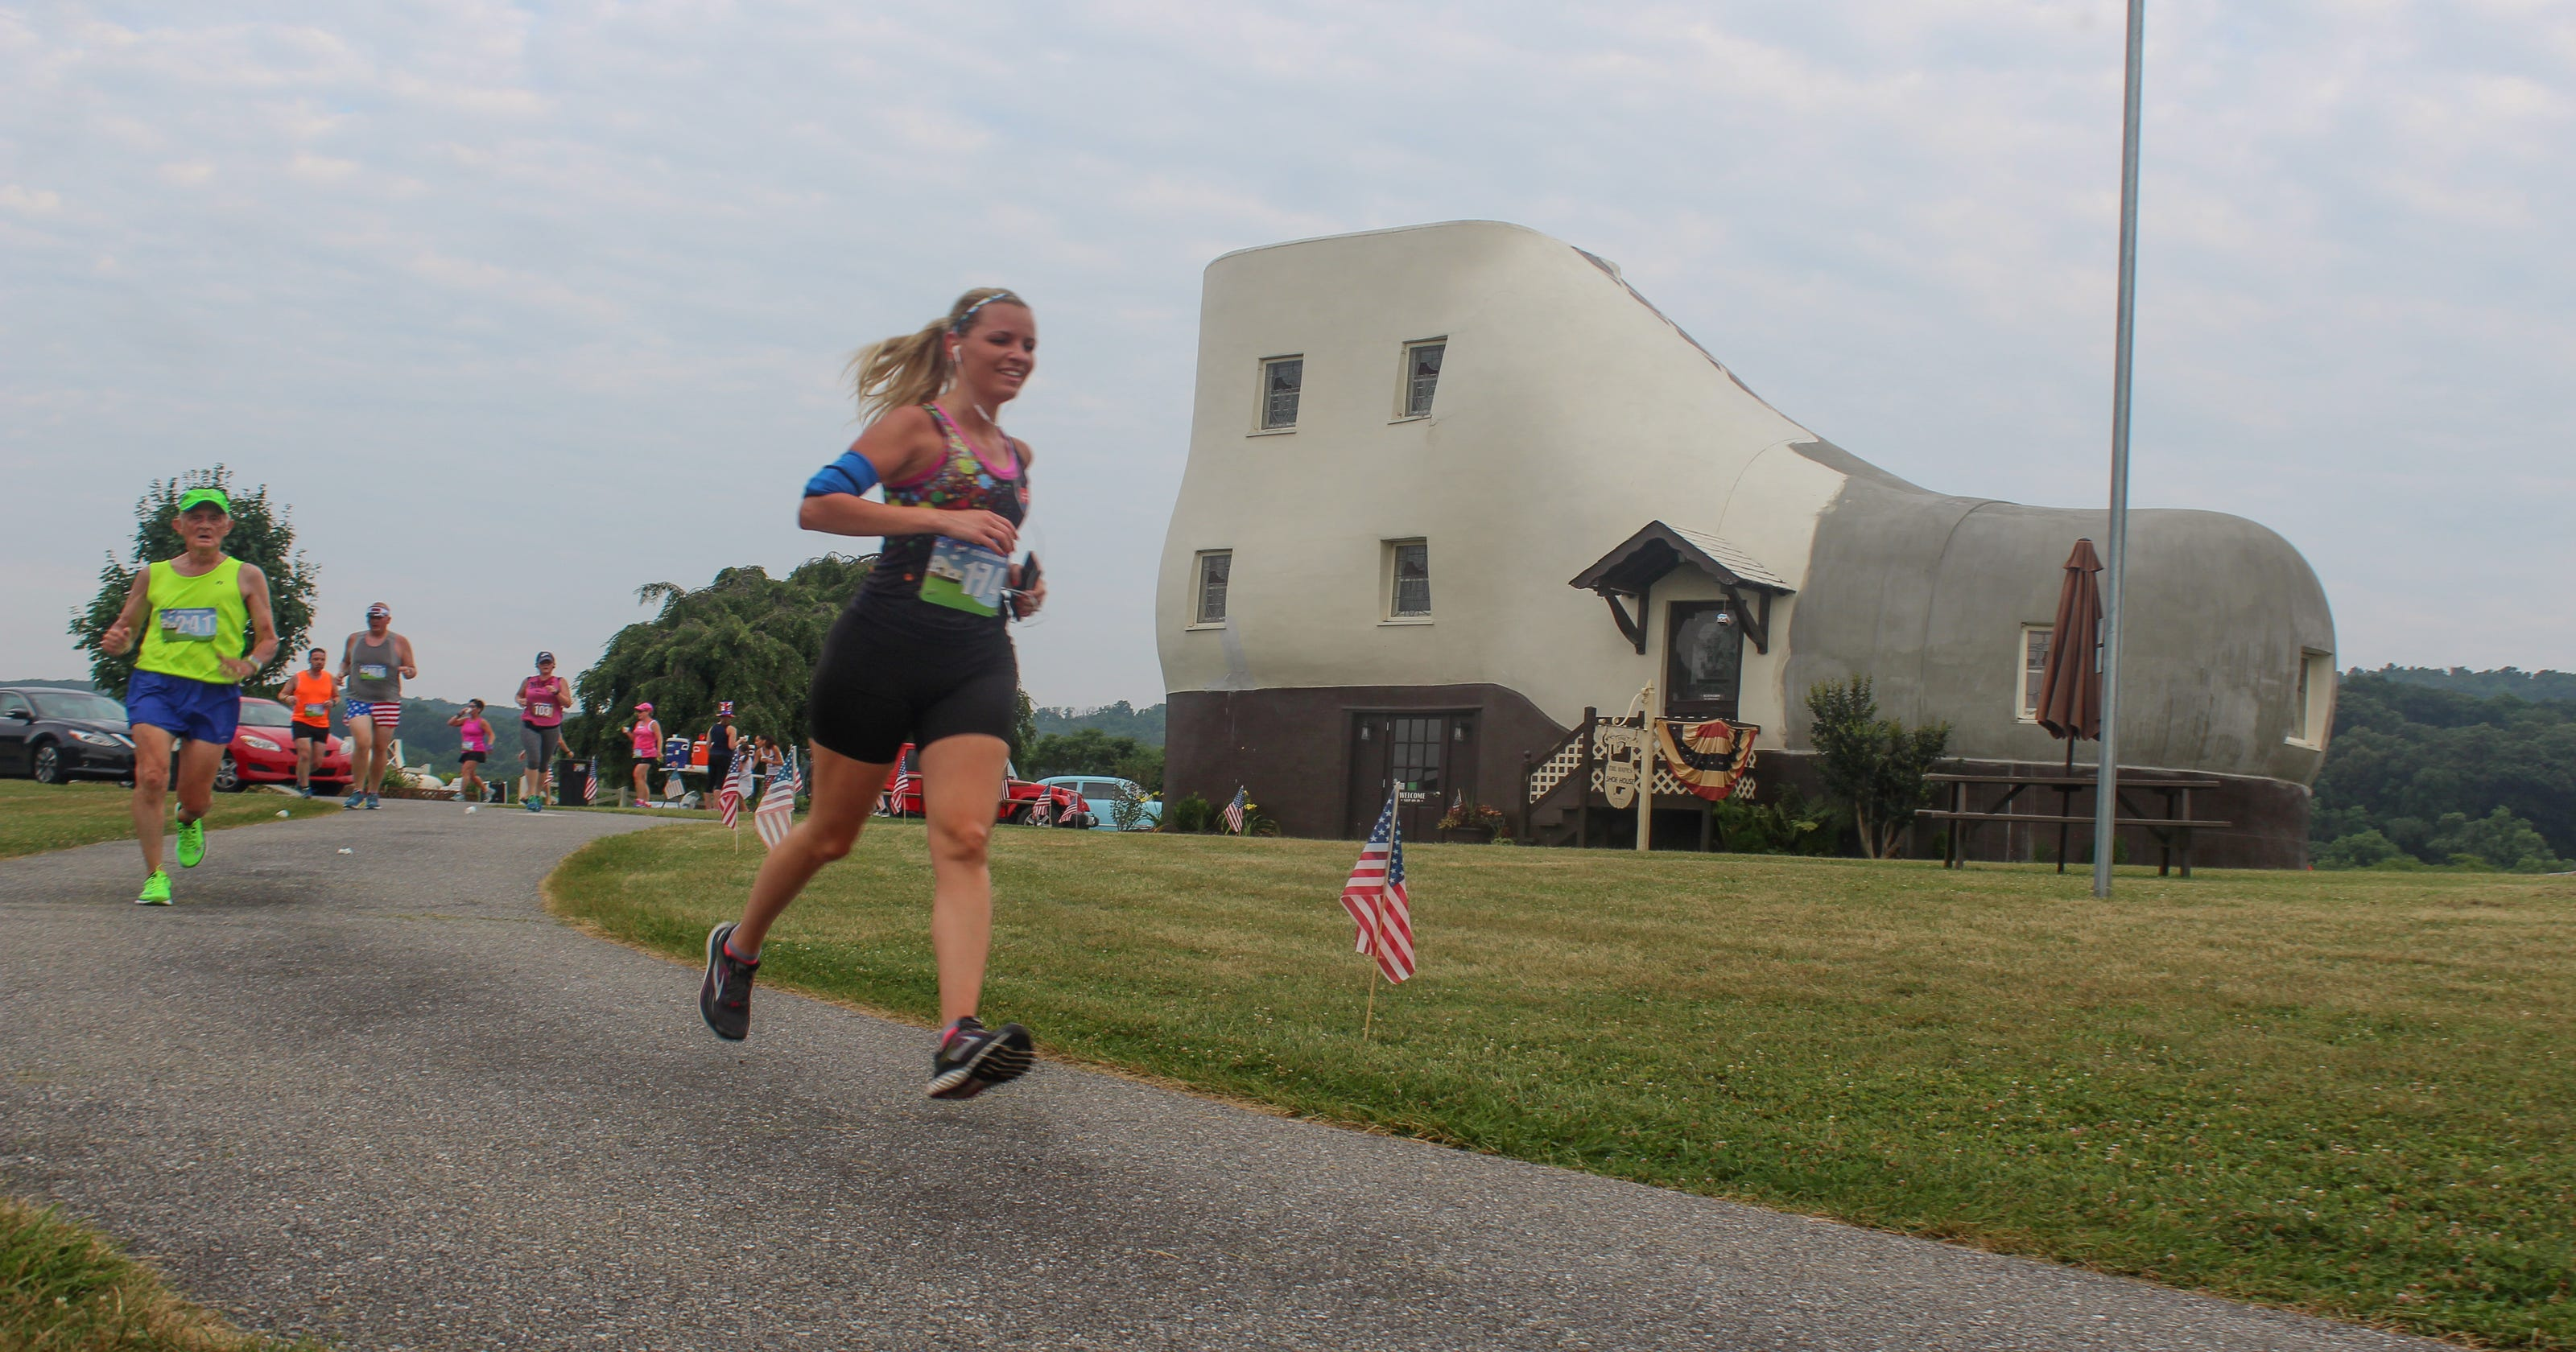 677c0098037a Shoe House 5-miler draws nearly 200 runners to US Road Running event